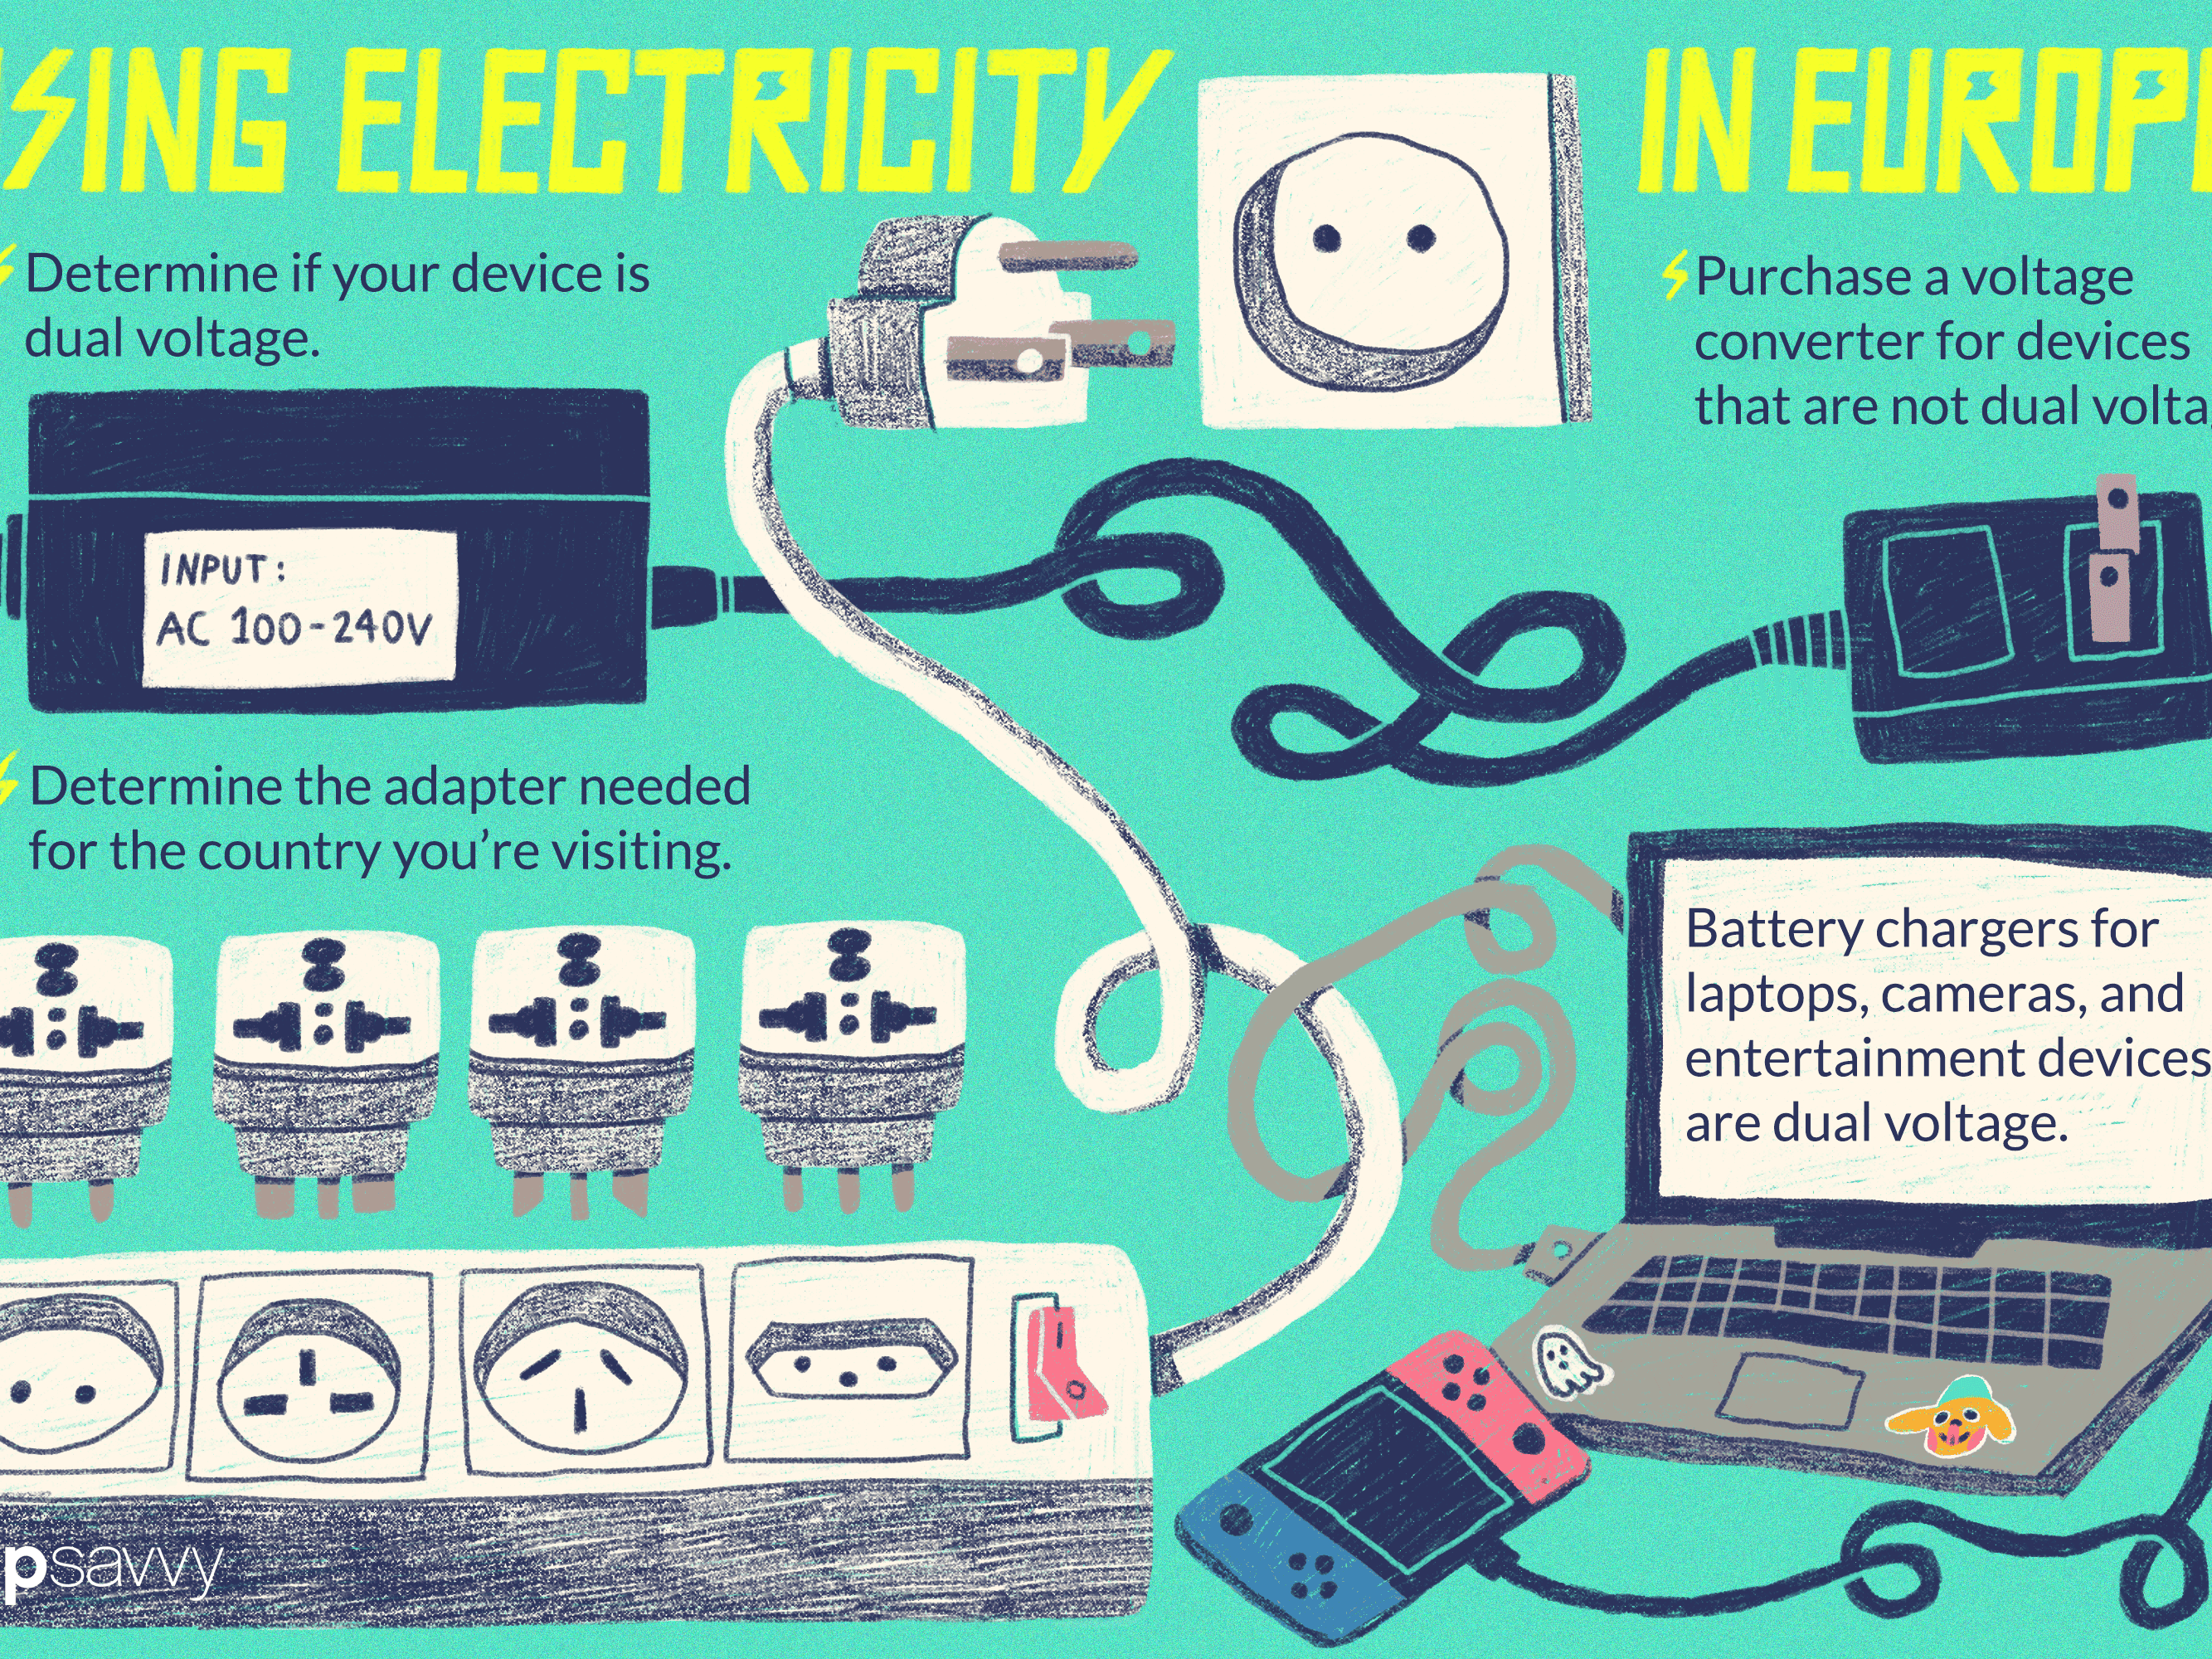 How To Use Sockets In Europe